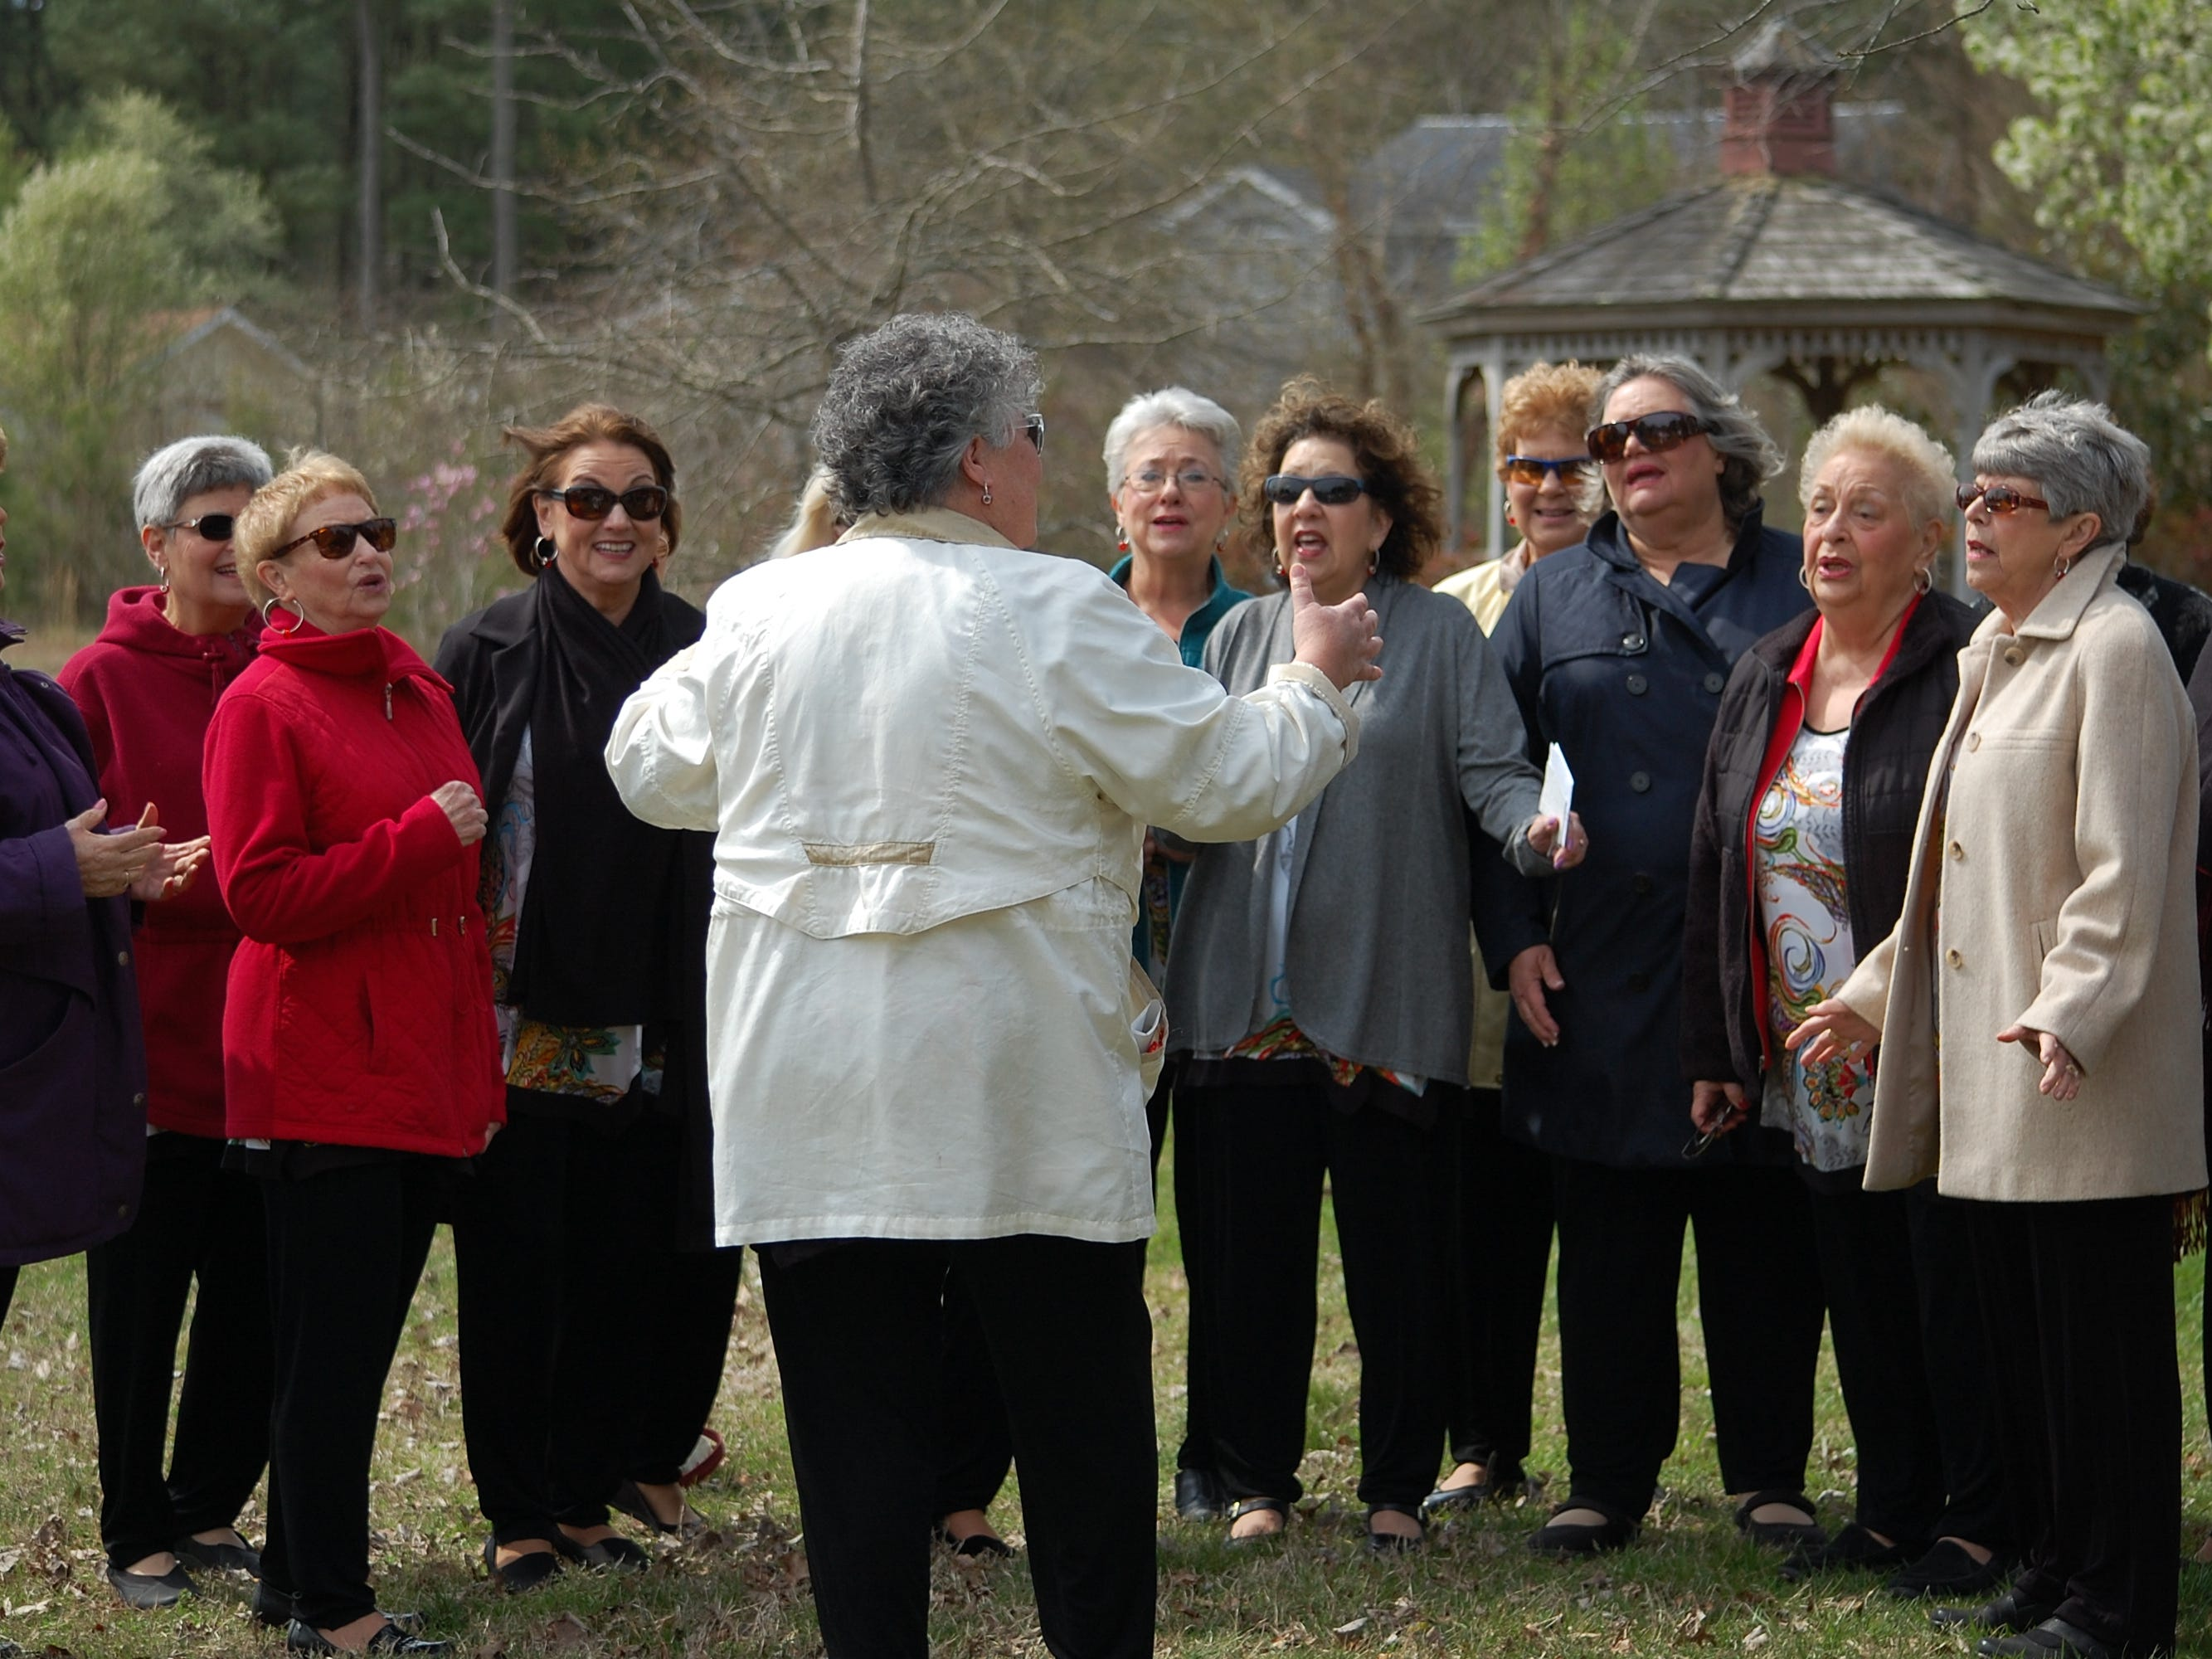 The Delmarva Chorus, under the direction of Carol Ludwig, sings at the Arbor Day memorial ceremony held April 11 at Pintail Park in Ocean Pines. The Ocean Pines Garden Club hosted the annual ceremony during which a tree was planted in memory of loved ones who passed away in 2018.